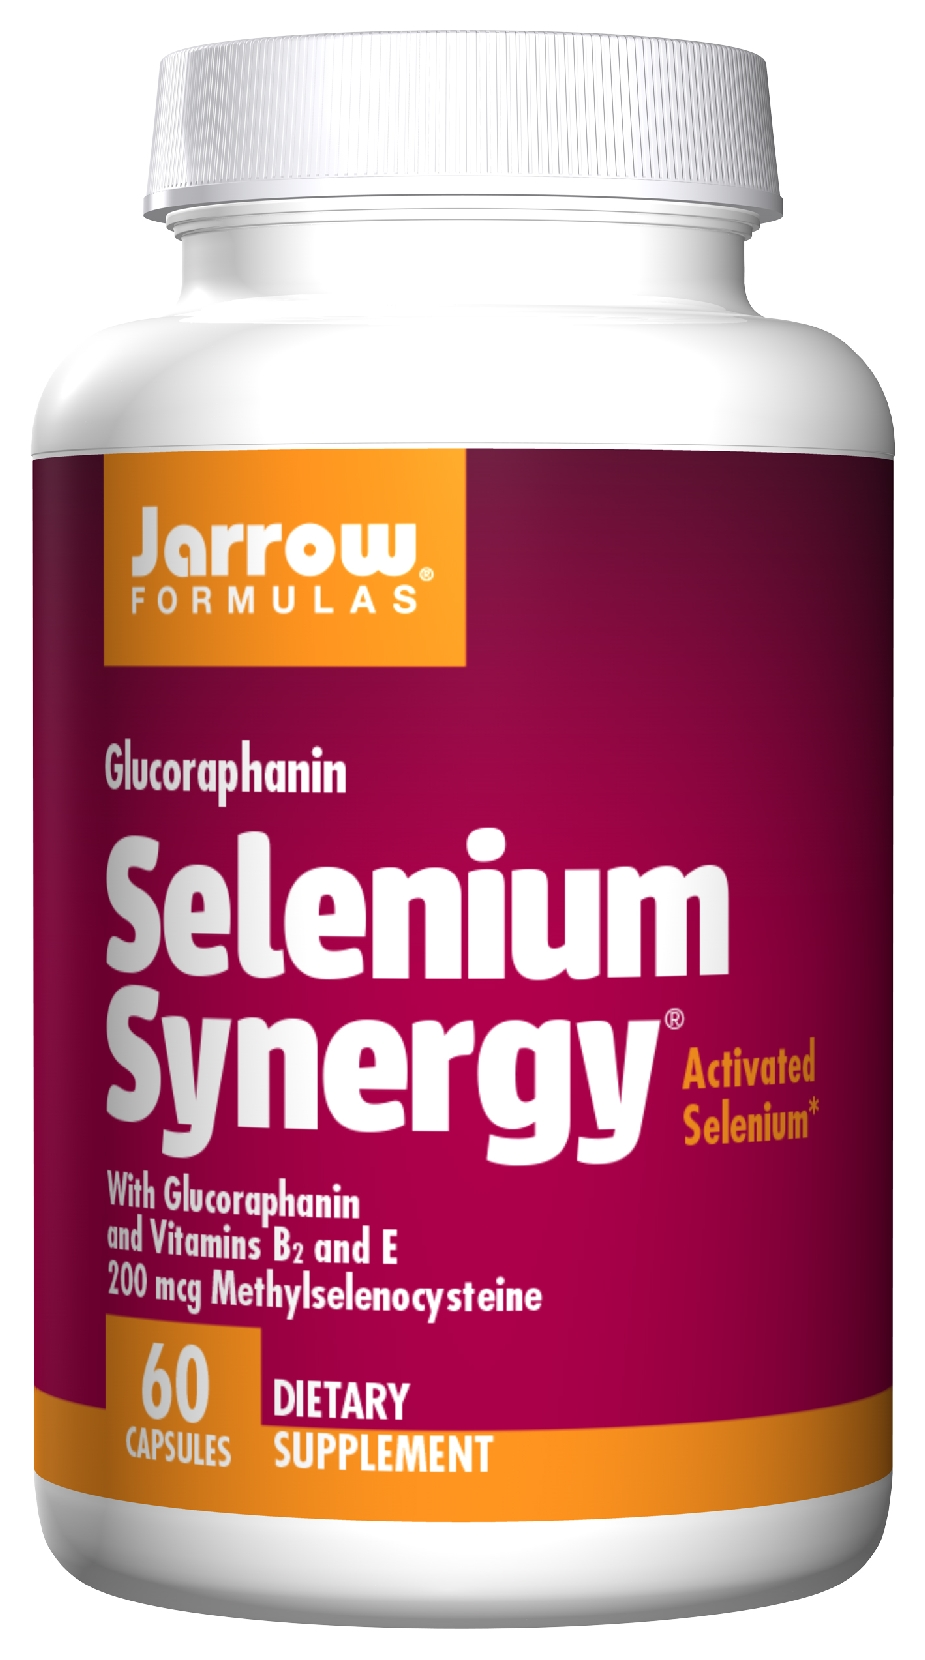 Selenium Synergy 60 caps by Jarrow Formulas